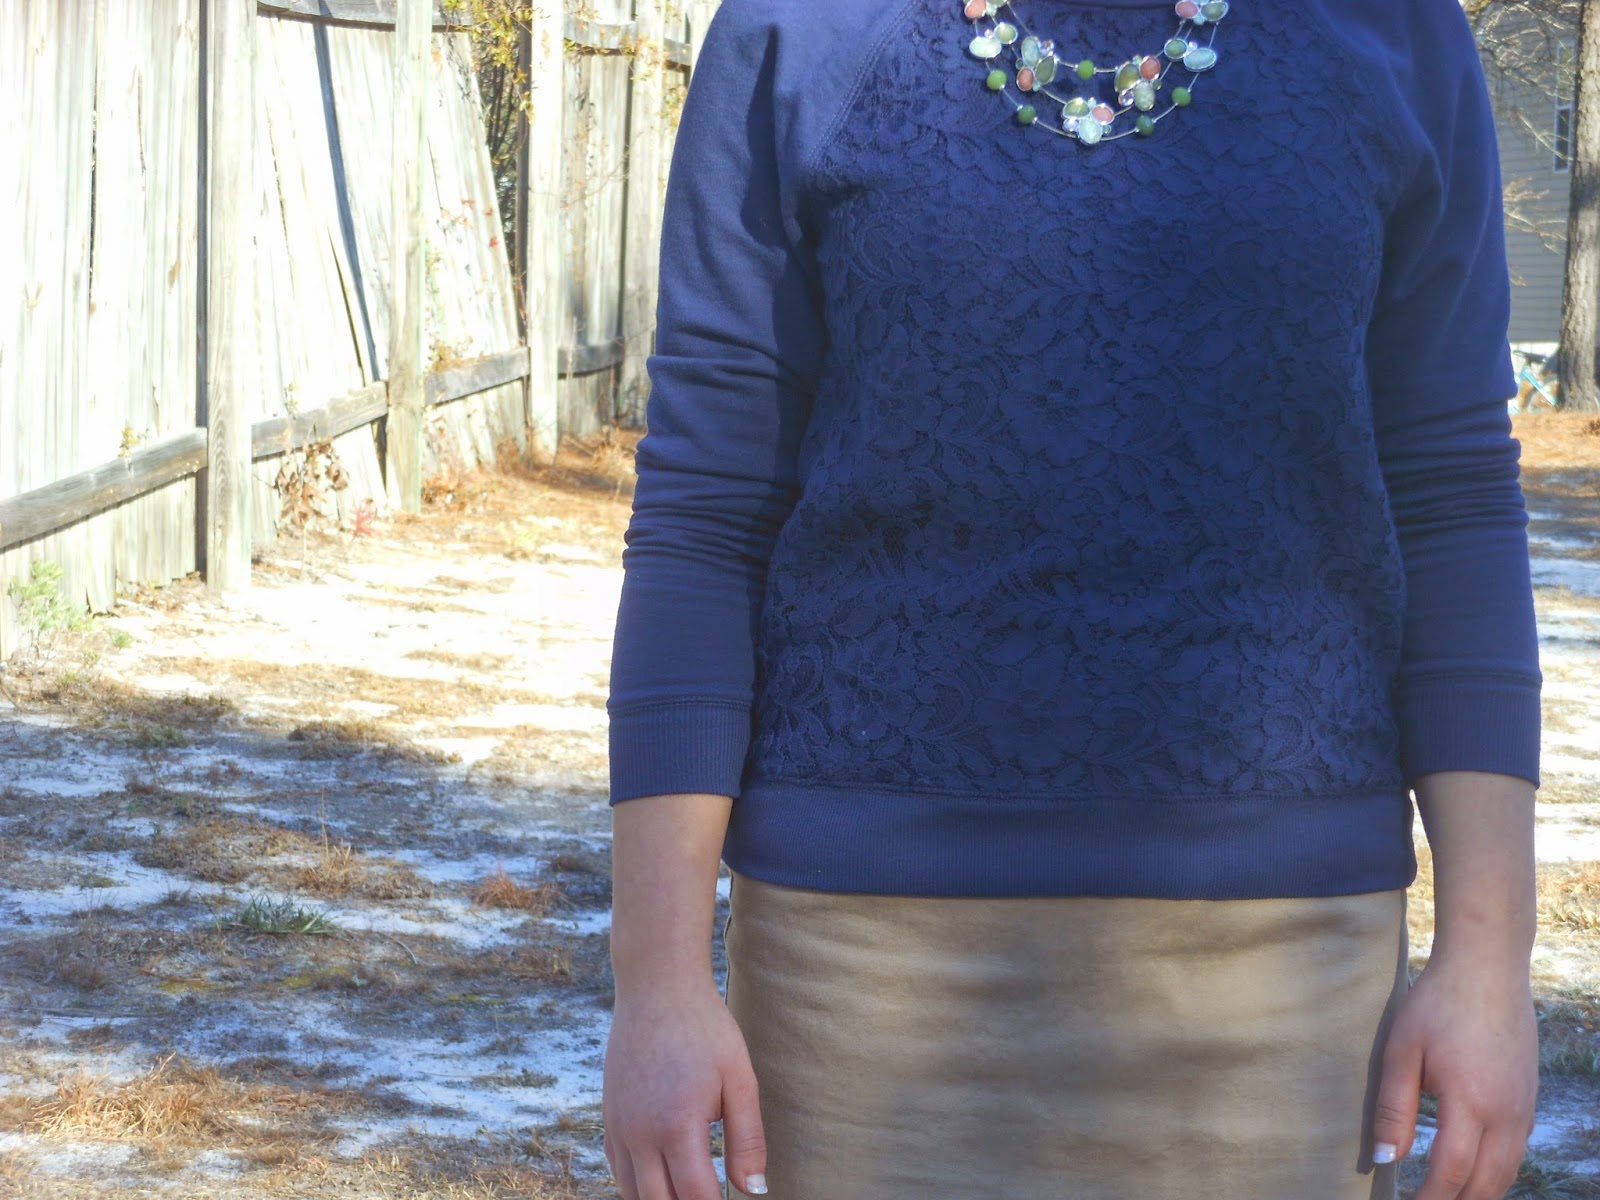 Mix It Monday-Lace Sweatshirt, khaki pencil skirt, leopard flats, statement necklace.http://mybowsandclothes.blogspot.com/. #outfit #outfitpost #outfitinspiration #statementnecklace #lace